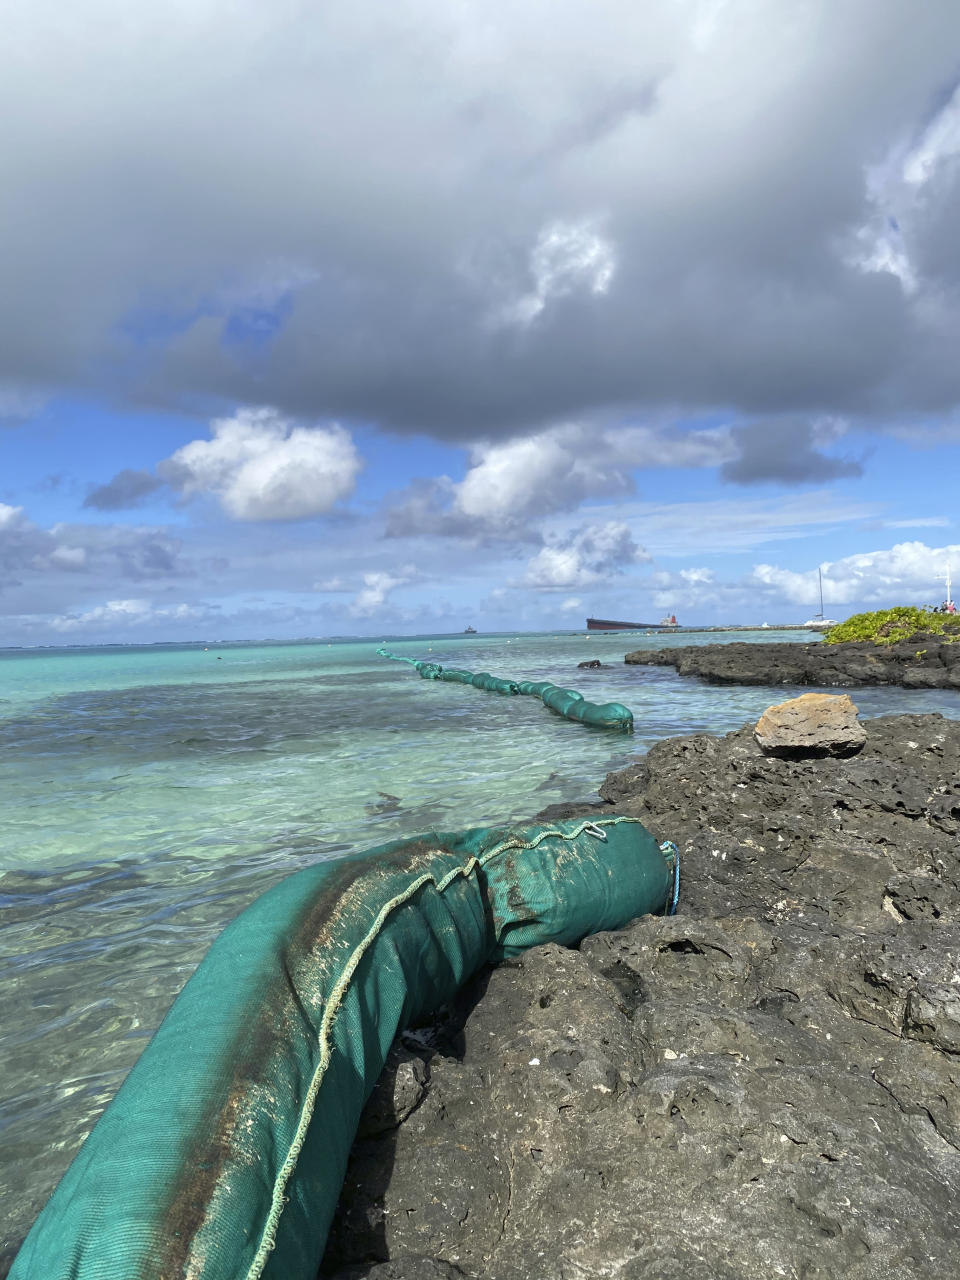 "In this photo provided by Grégoire Rouxel a ship, top right, off shore that ran aground is leaking fuel in the ocean, Friday, Aug. 7, 2020, in Mauritius. The Indian Ocean island of Mauritius has declared a ""state of environmental emergency"" after a Japanese-owned ship that ran aground offshore days ago began spilling tons of fuel. Prime Minister Pravind Jugnauth announced the development late Friday, Aug. 7, as satellite images showed a dark slick spreading near environmental areas the government called ""very sensitive."" (@gregrouxel via AP)"